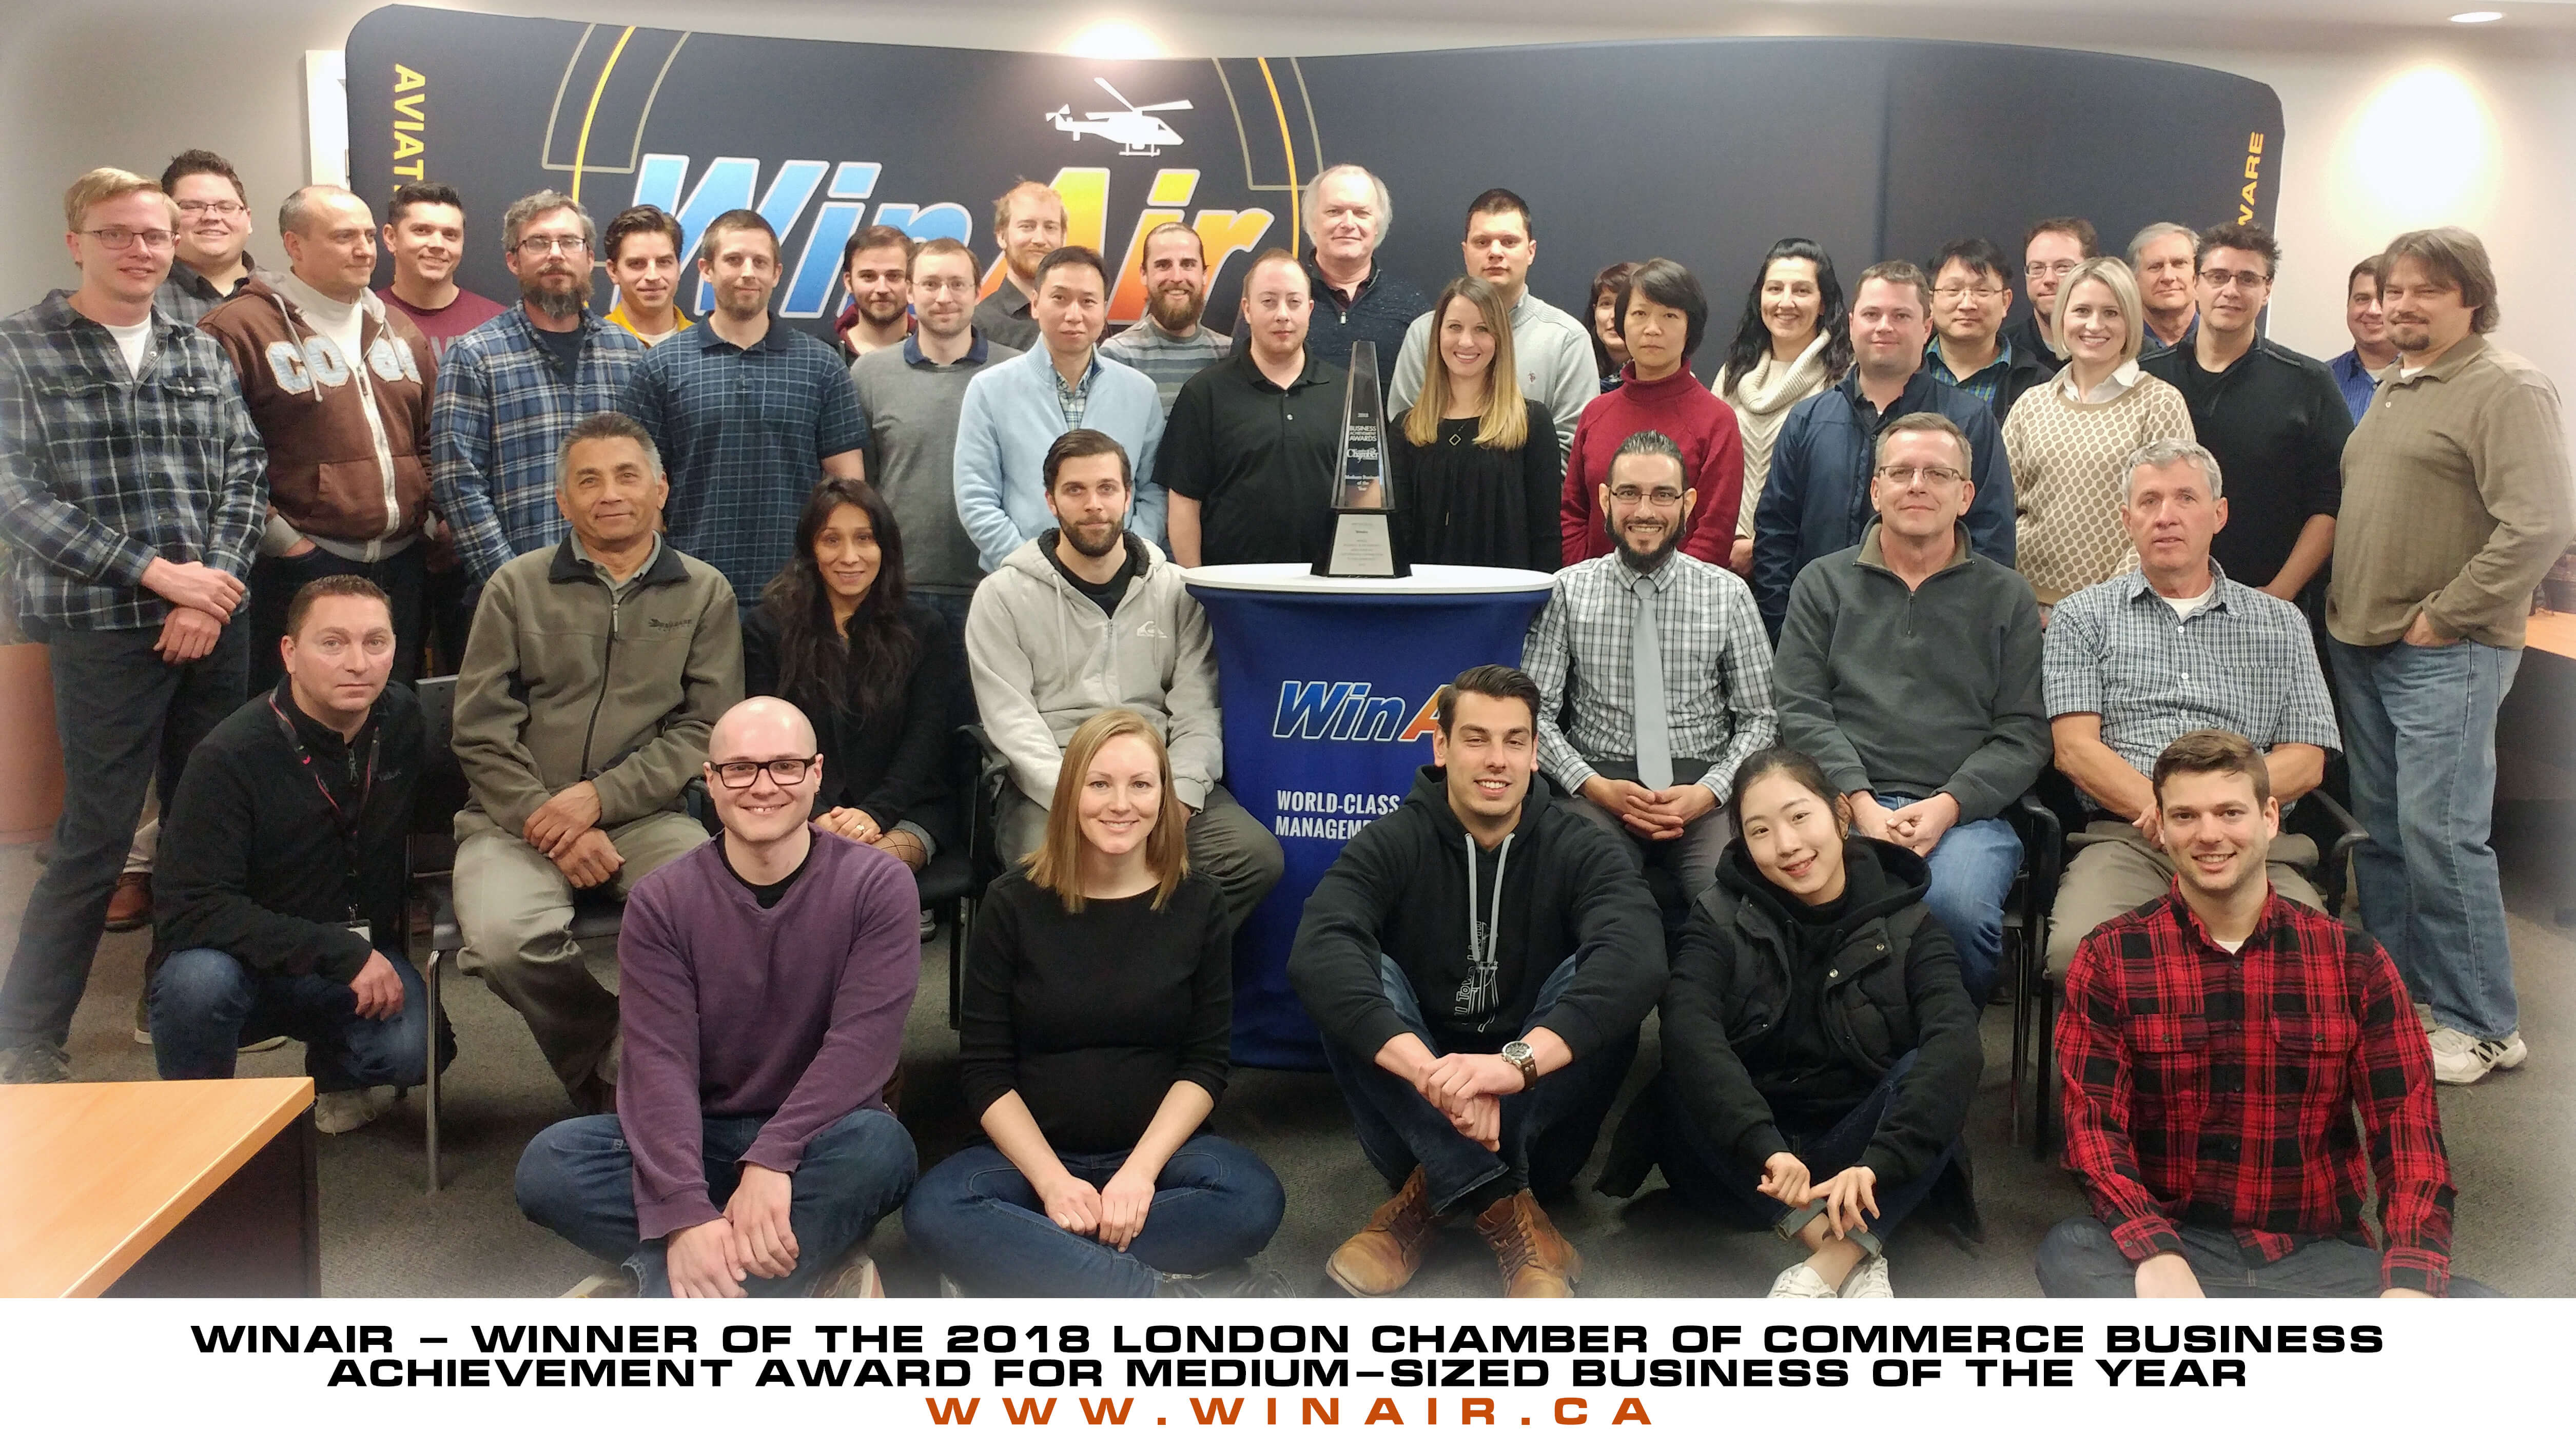 WinAir - Team photo - Winner of the 2018 London Chamber of Commerce Business Achievement Award for medium-sized Business of the Year